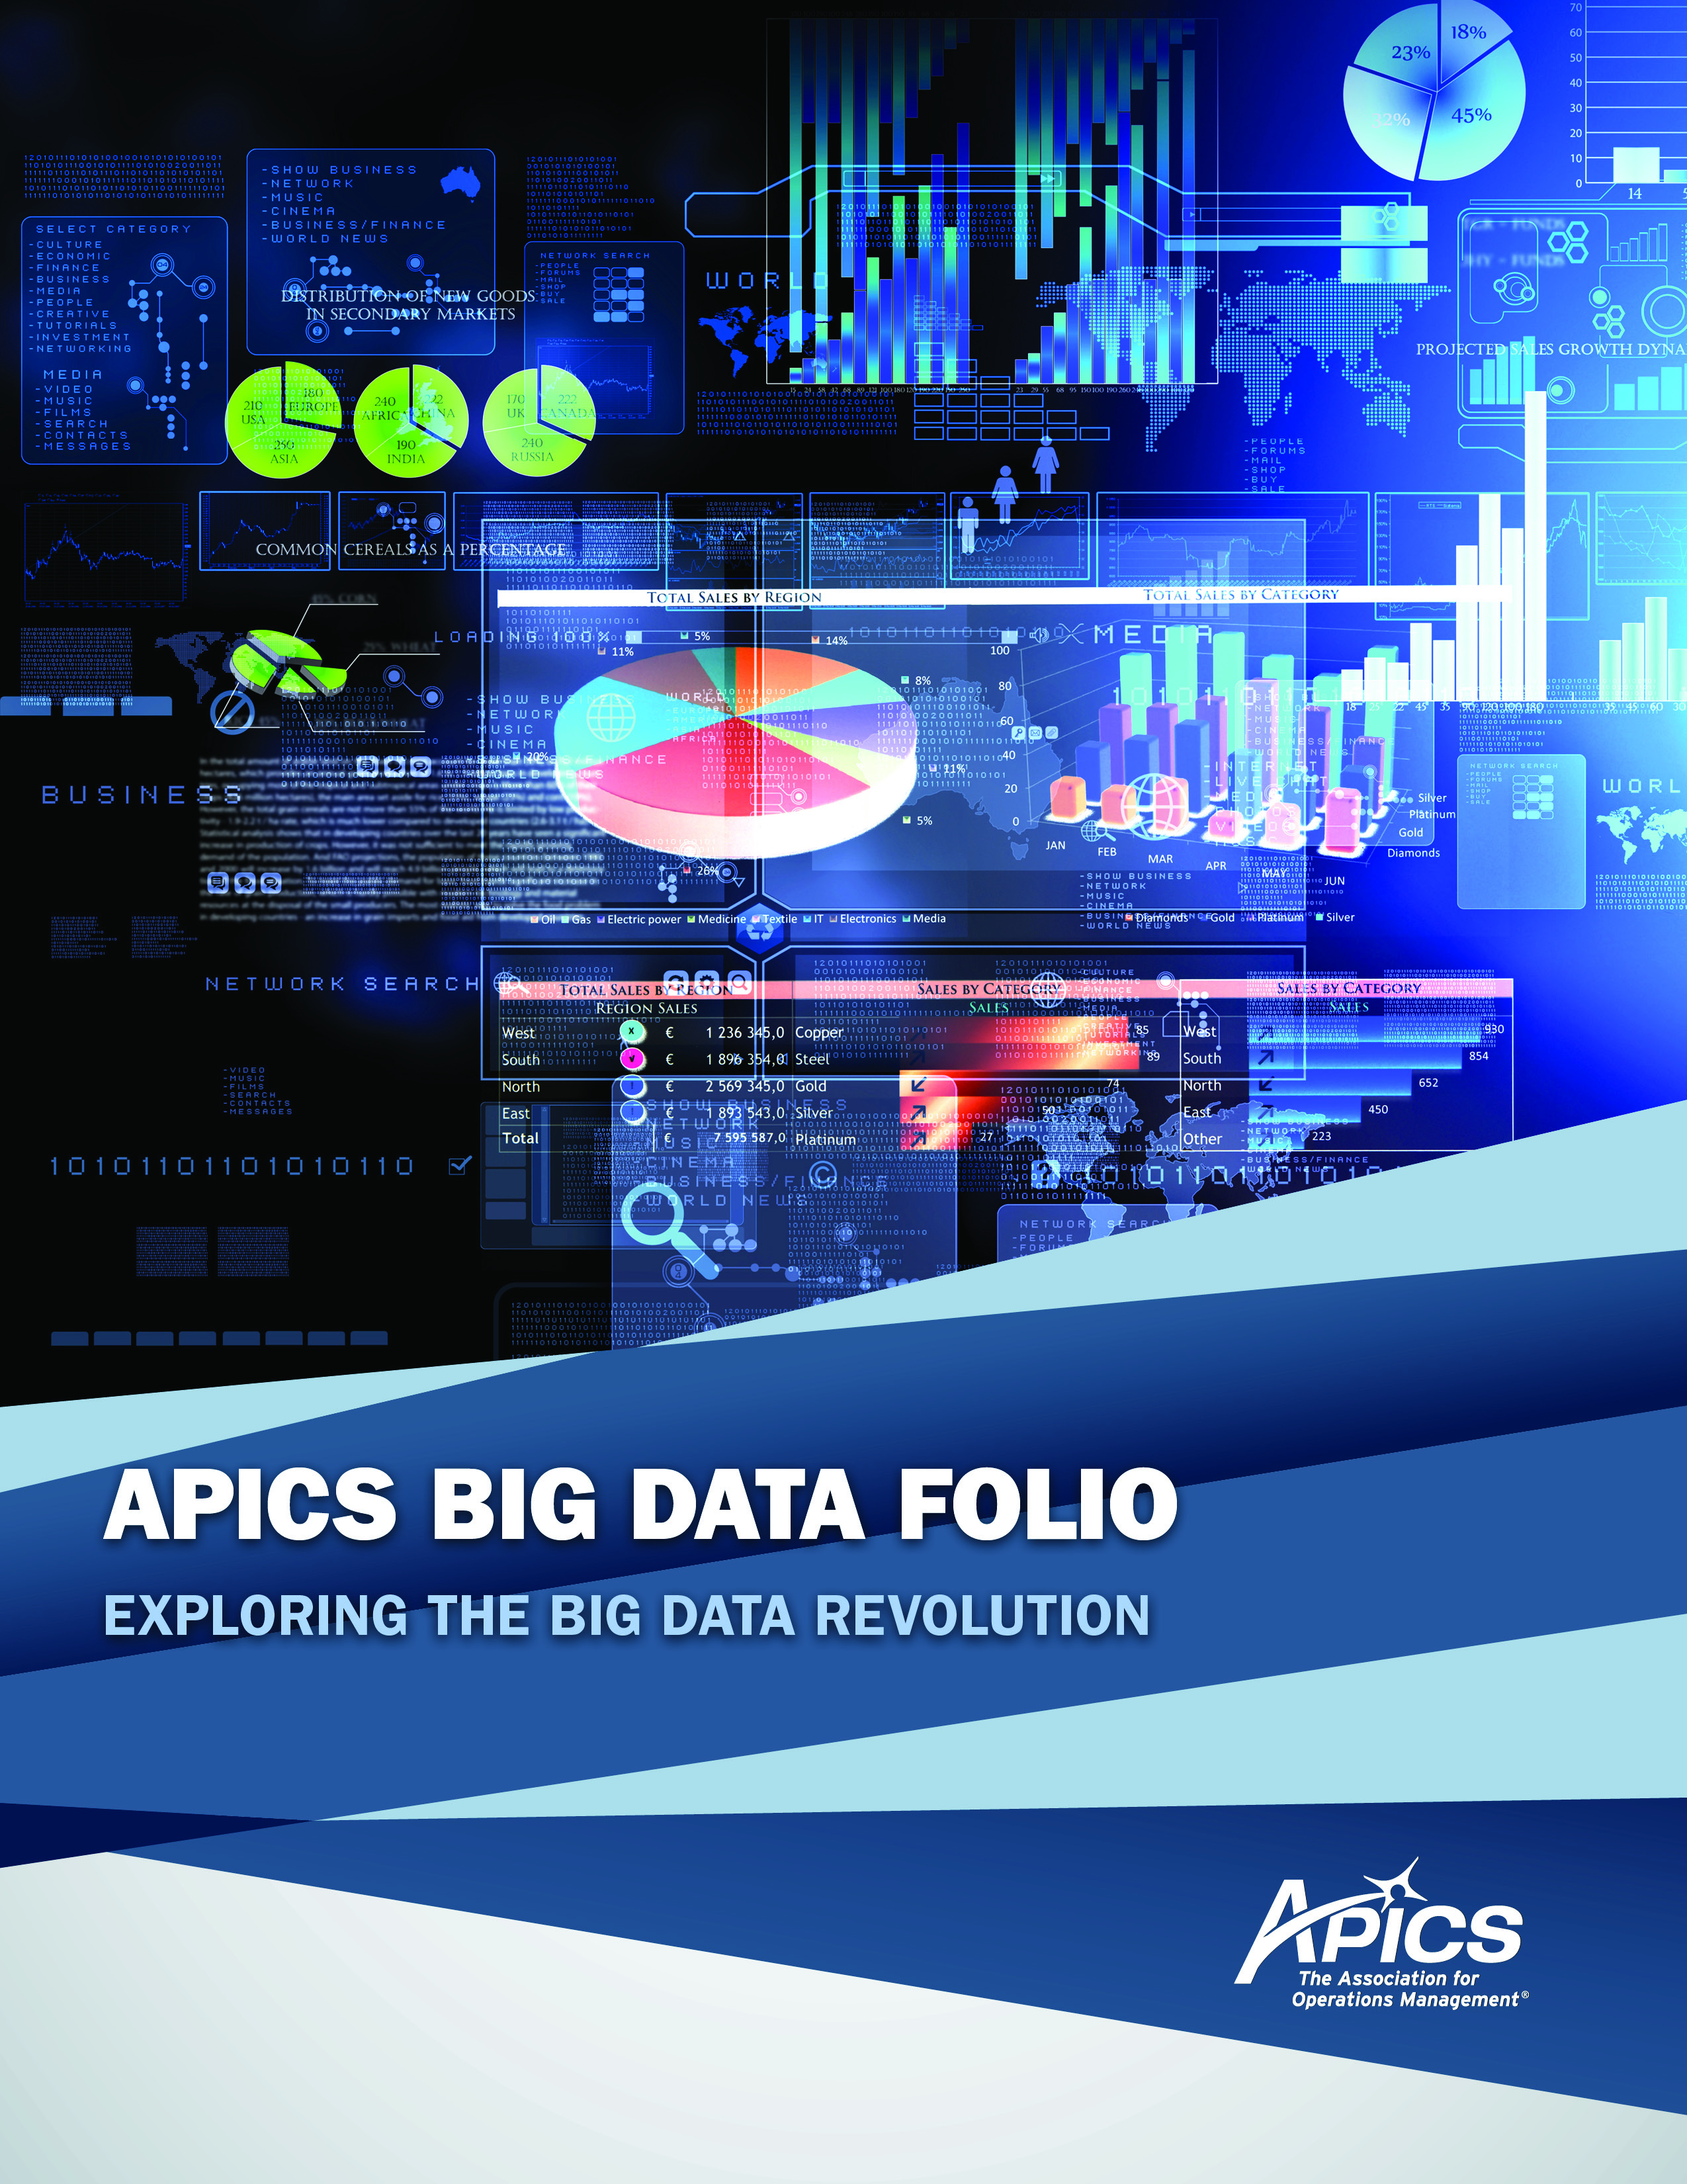 APICS Big Data Folio